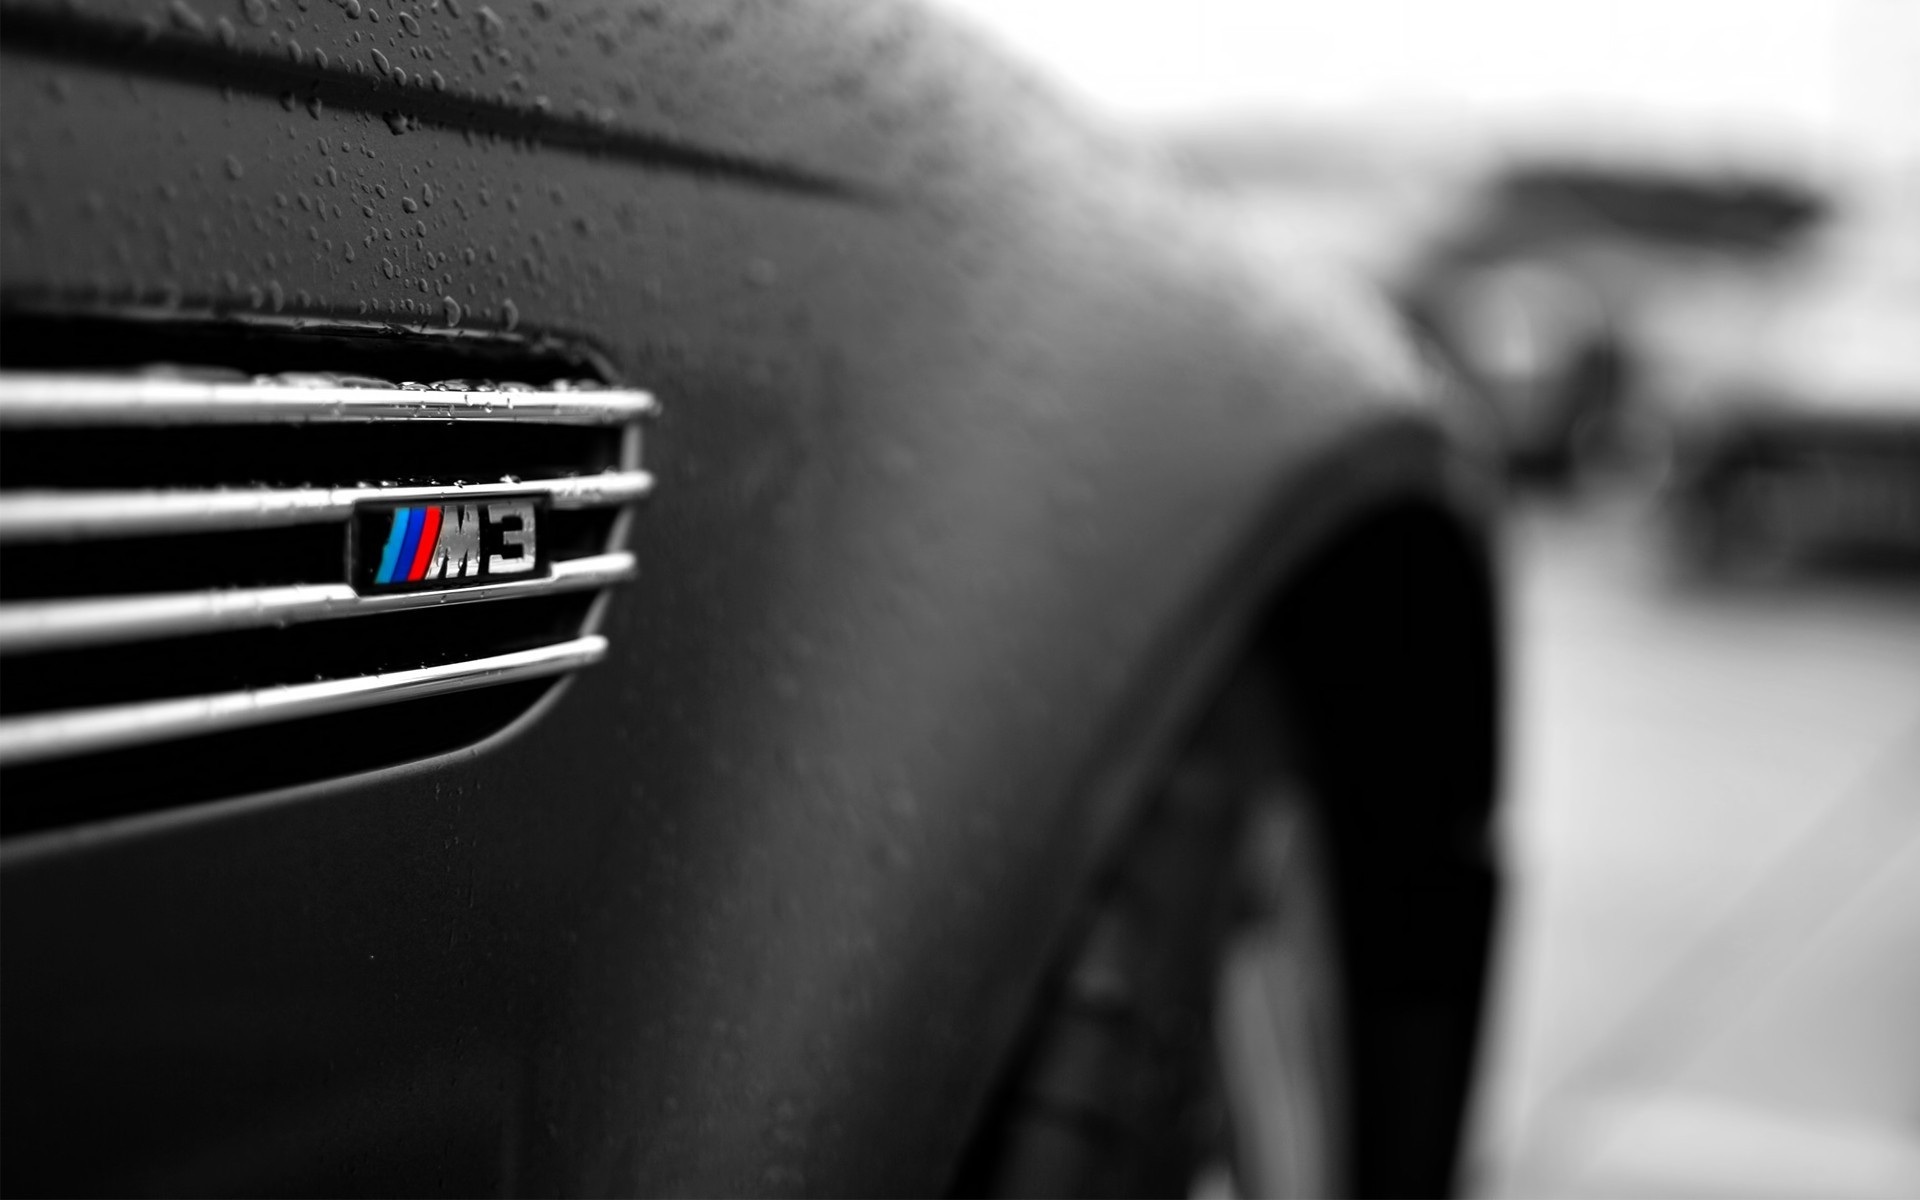 wheel of bmw m3 hd wallpaper | hd latest wallpapers